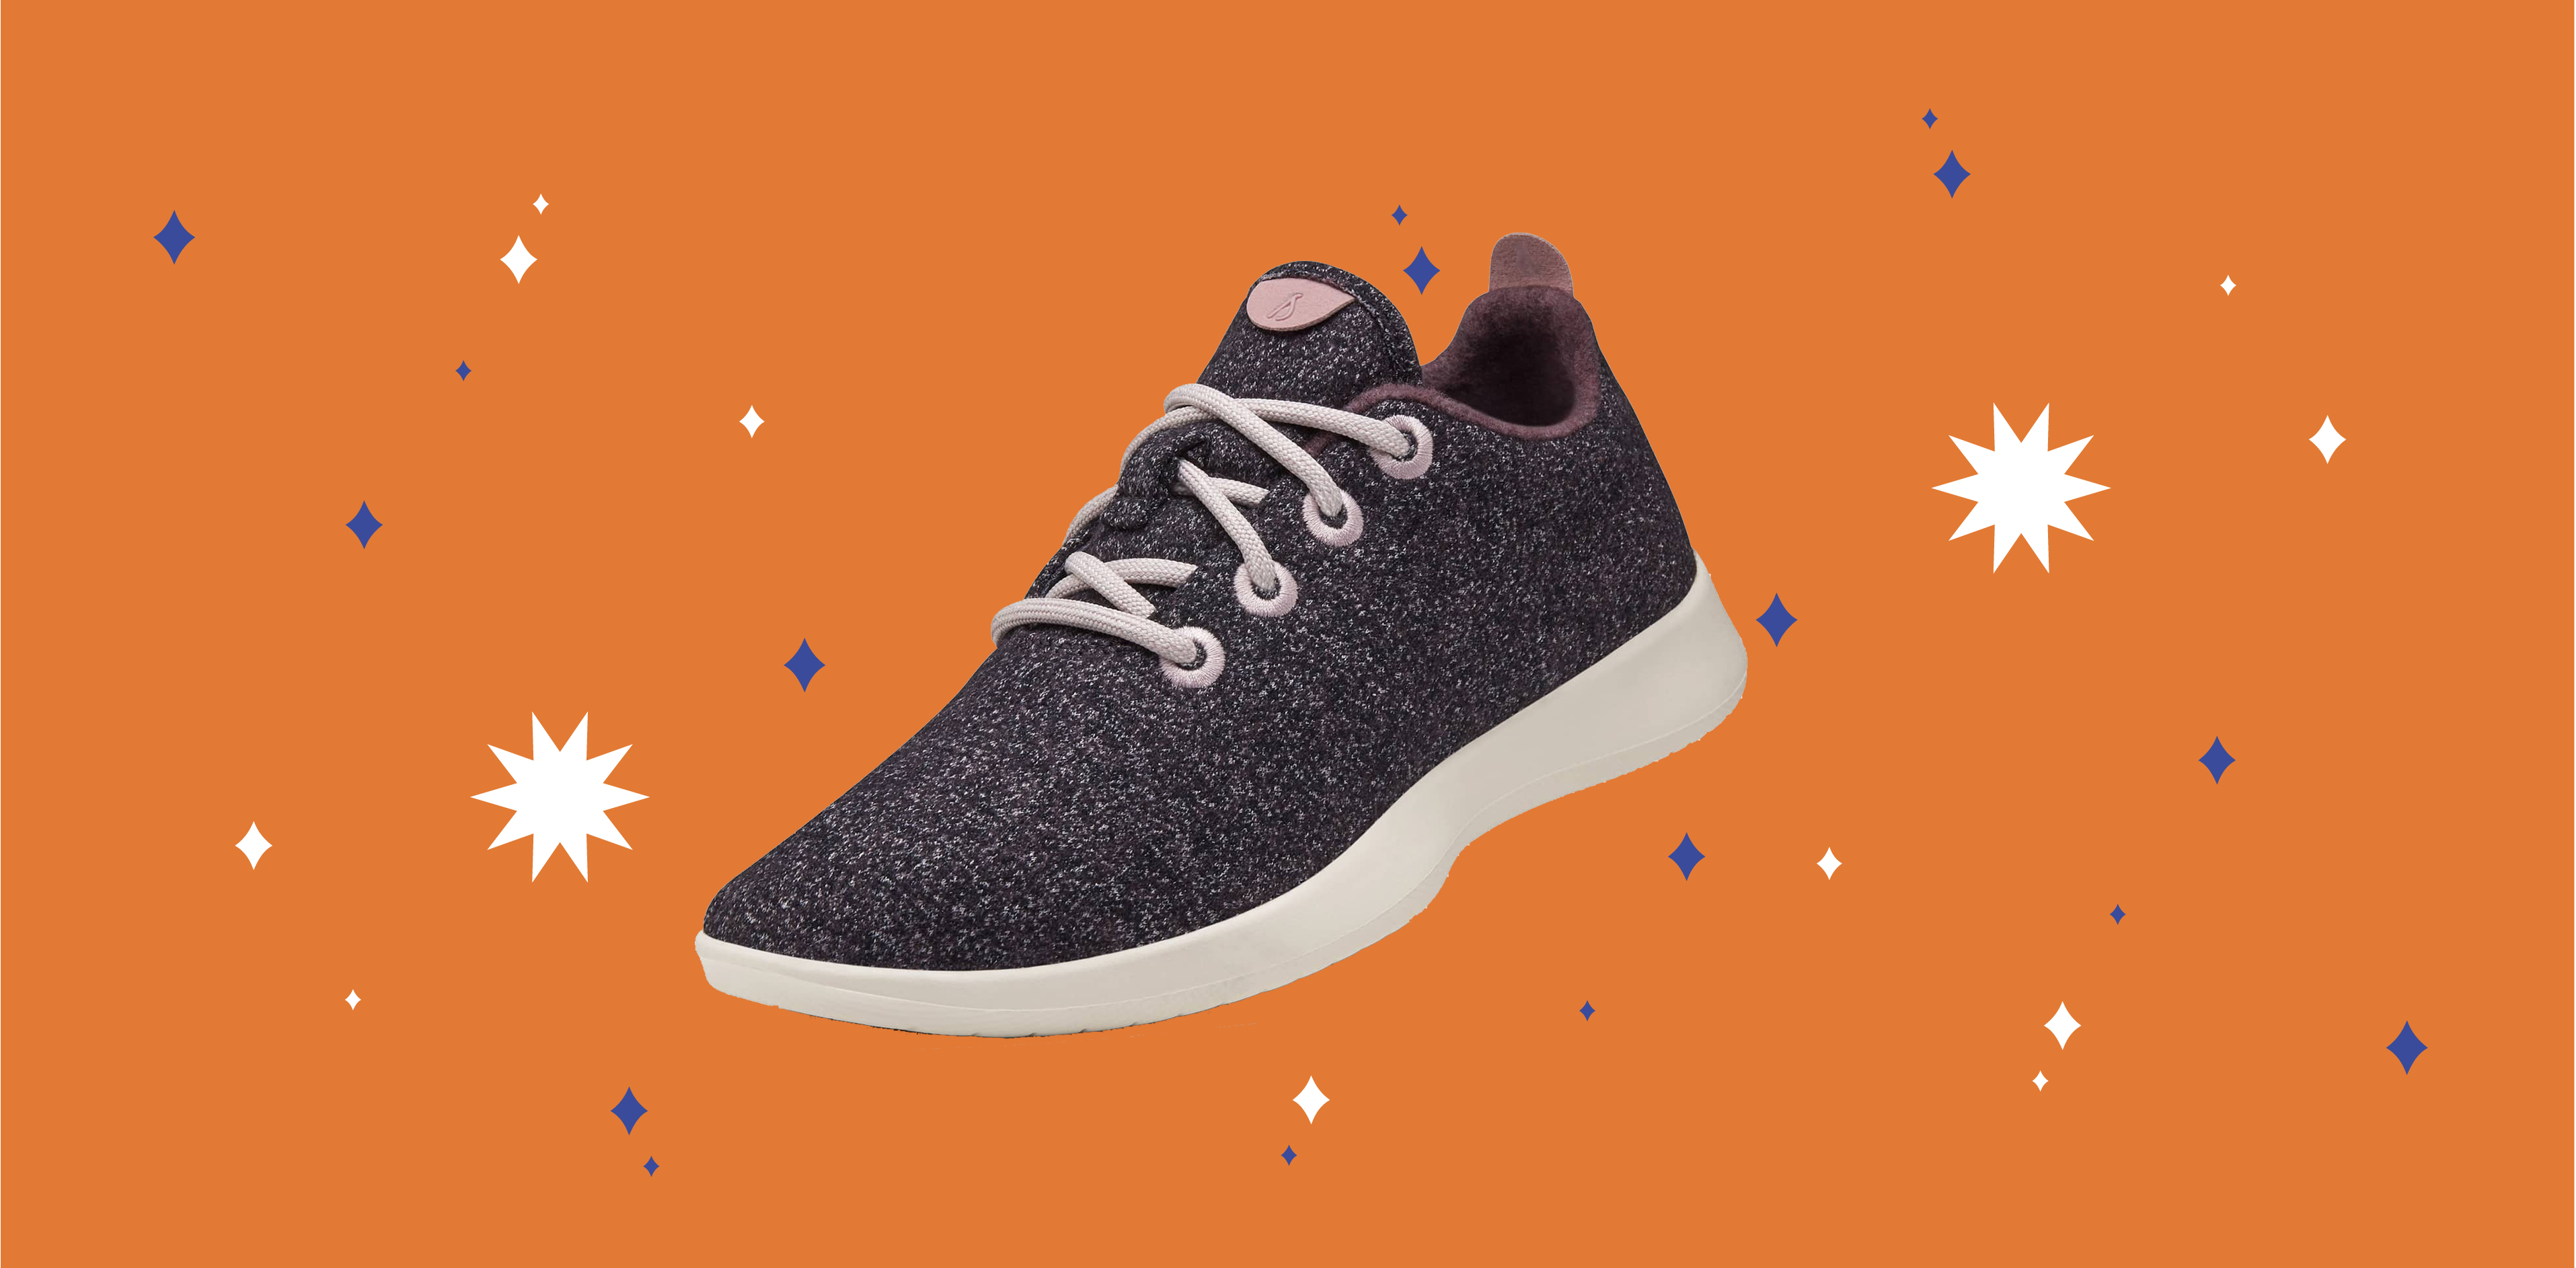 716d887d3f Allbirds Review  Are These Wool Shoes Worth It